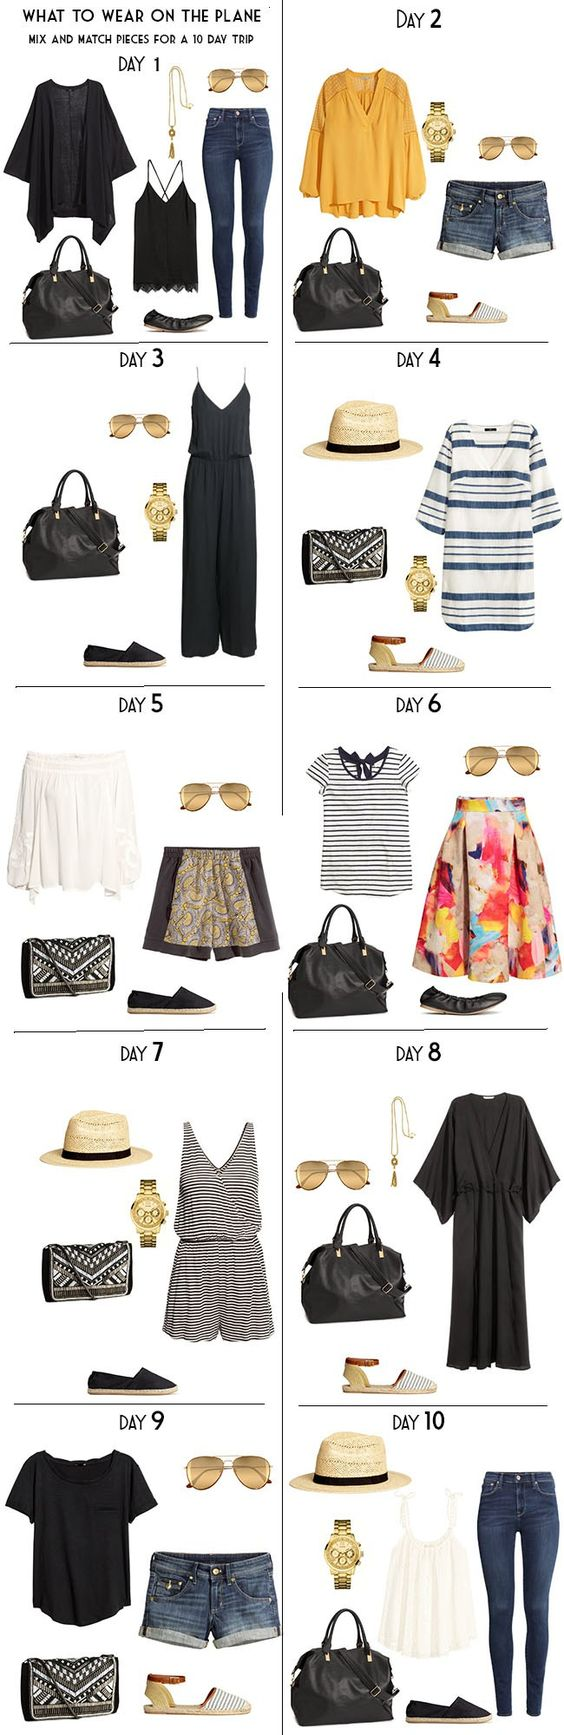 10 Days of outfits in Greece + full packing list here: http://livelovesara.com/2015/06/greece-packing-list/